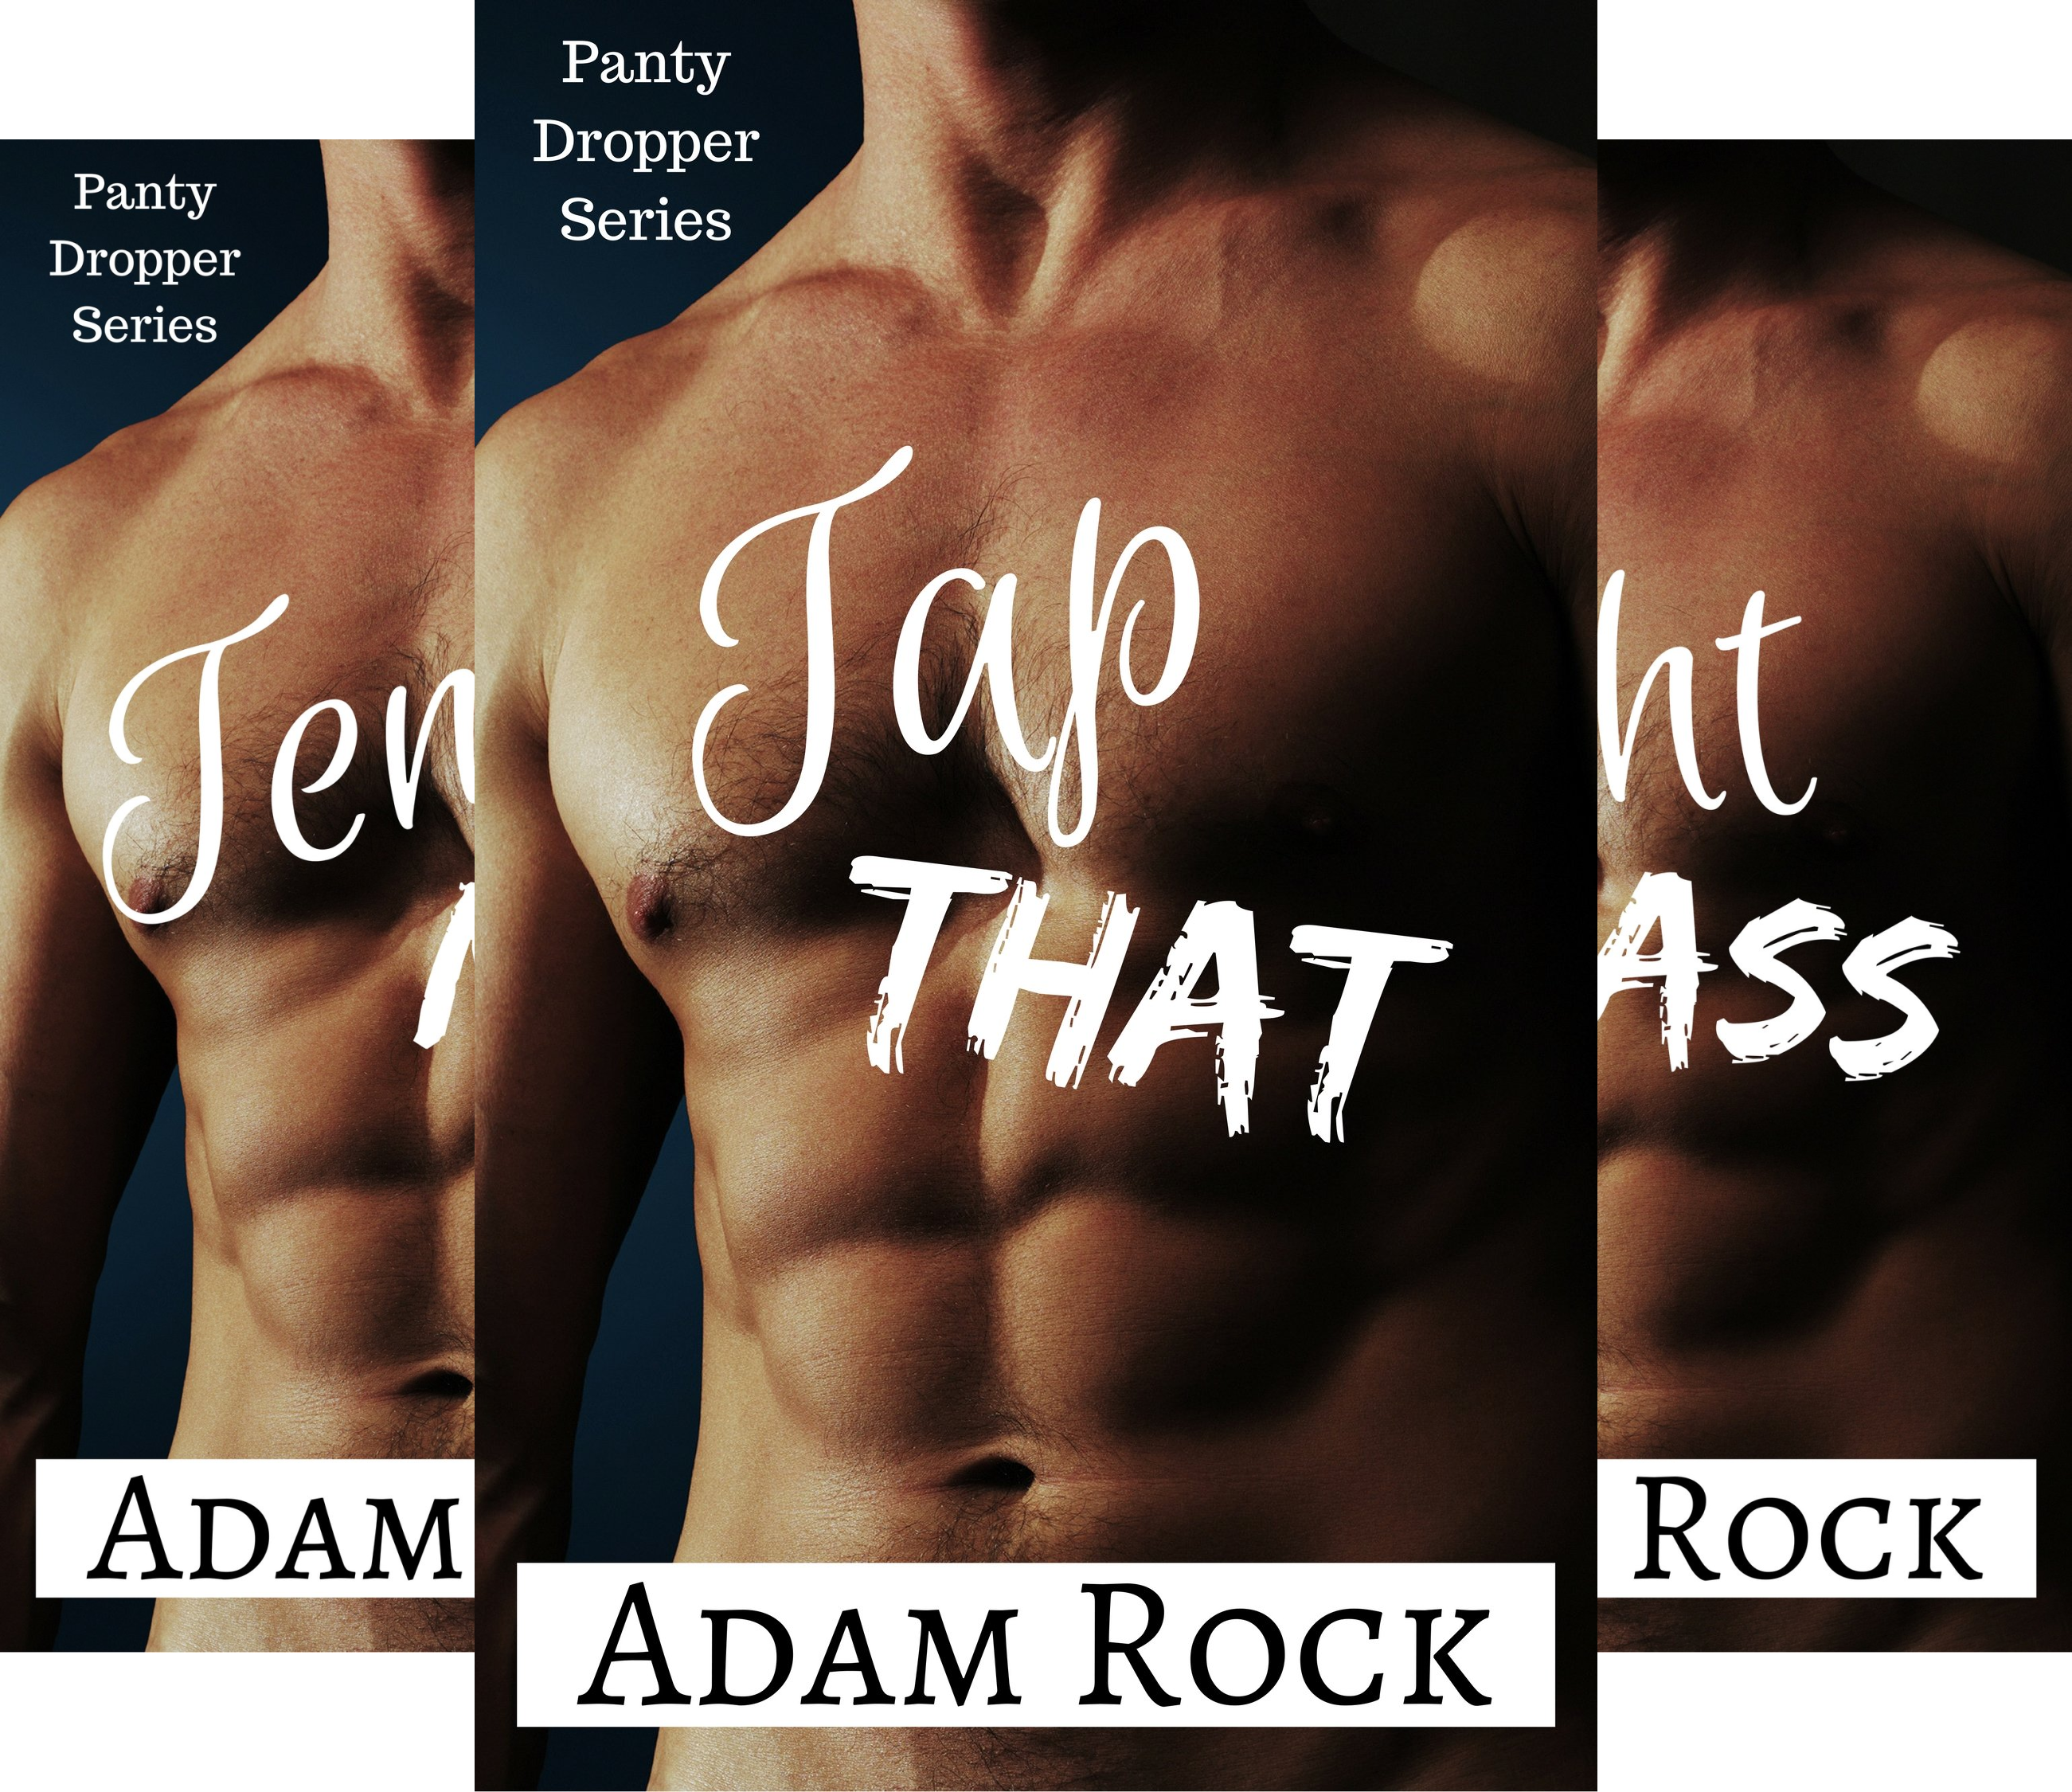 Panty Dropper Series (3 Book Series)